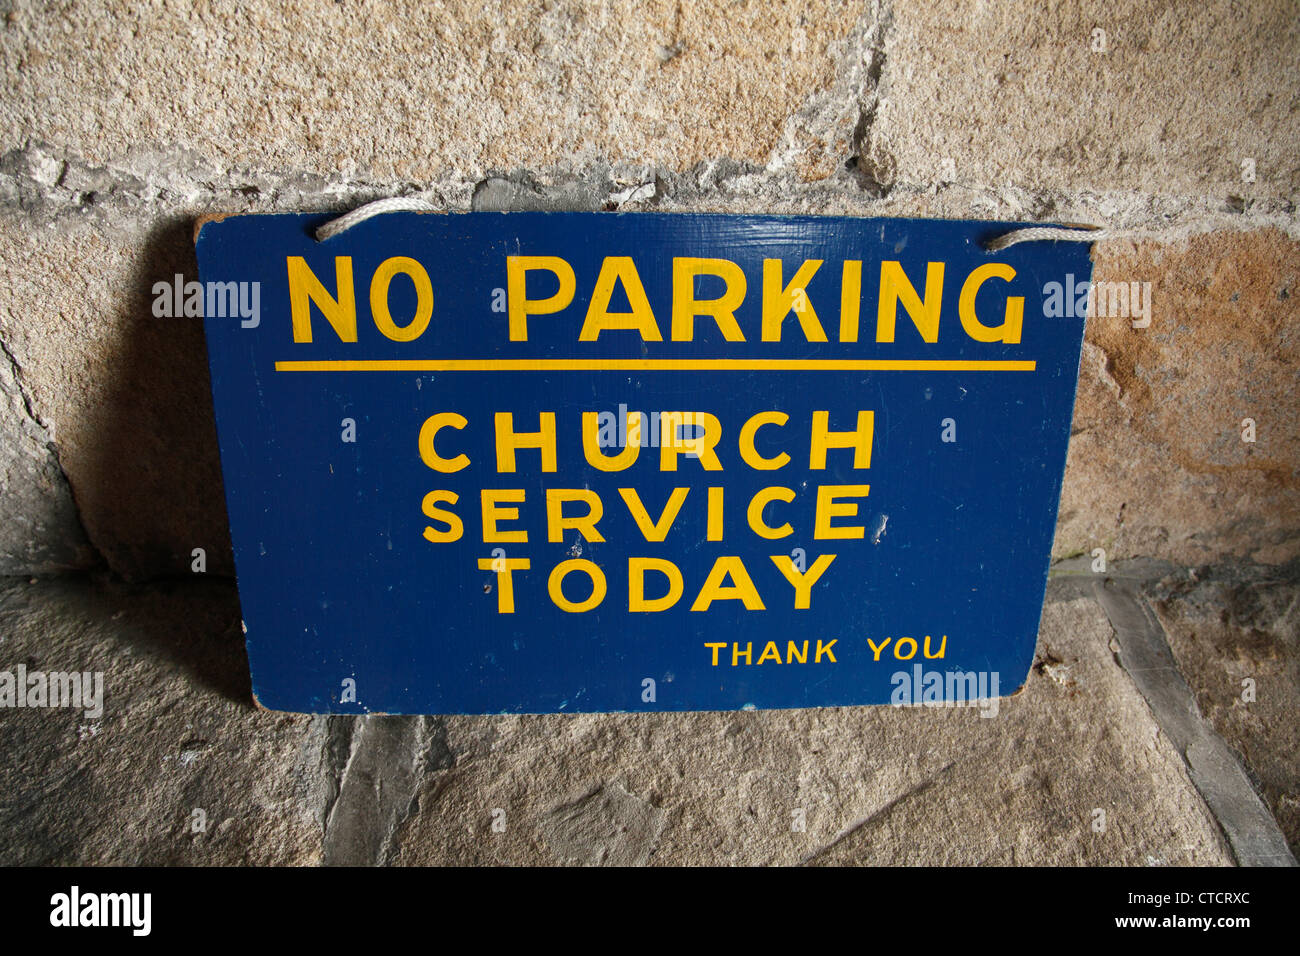 A No Parking sign at a church in Derbyshire, England, U.K. - Stock Image